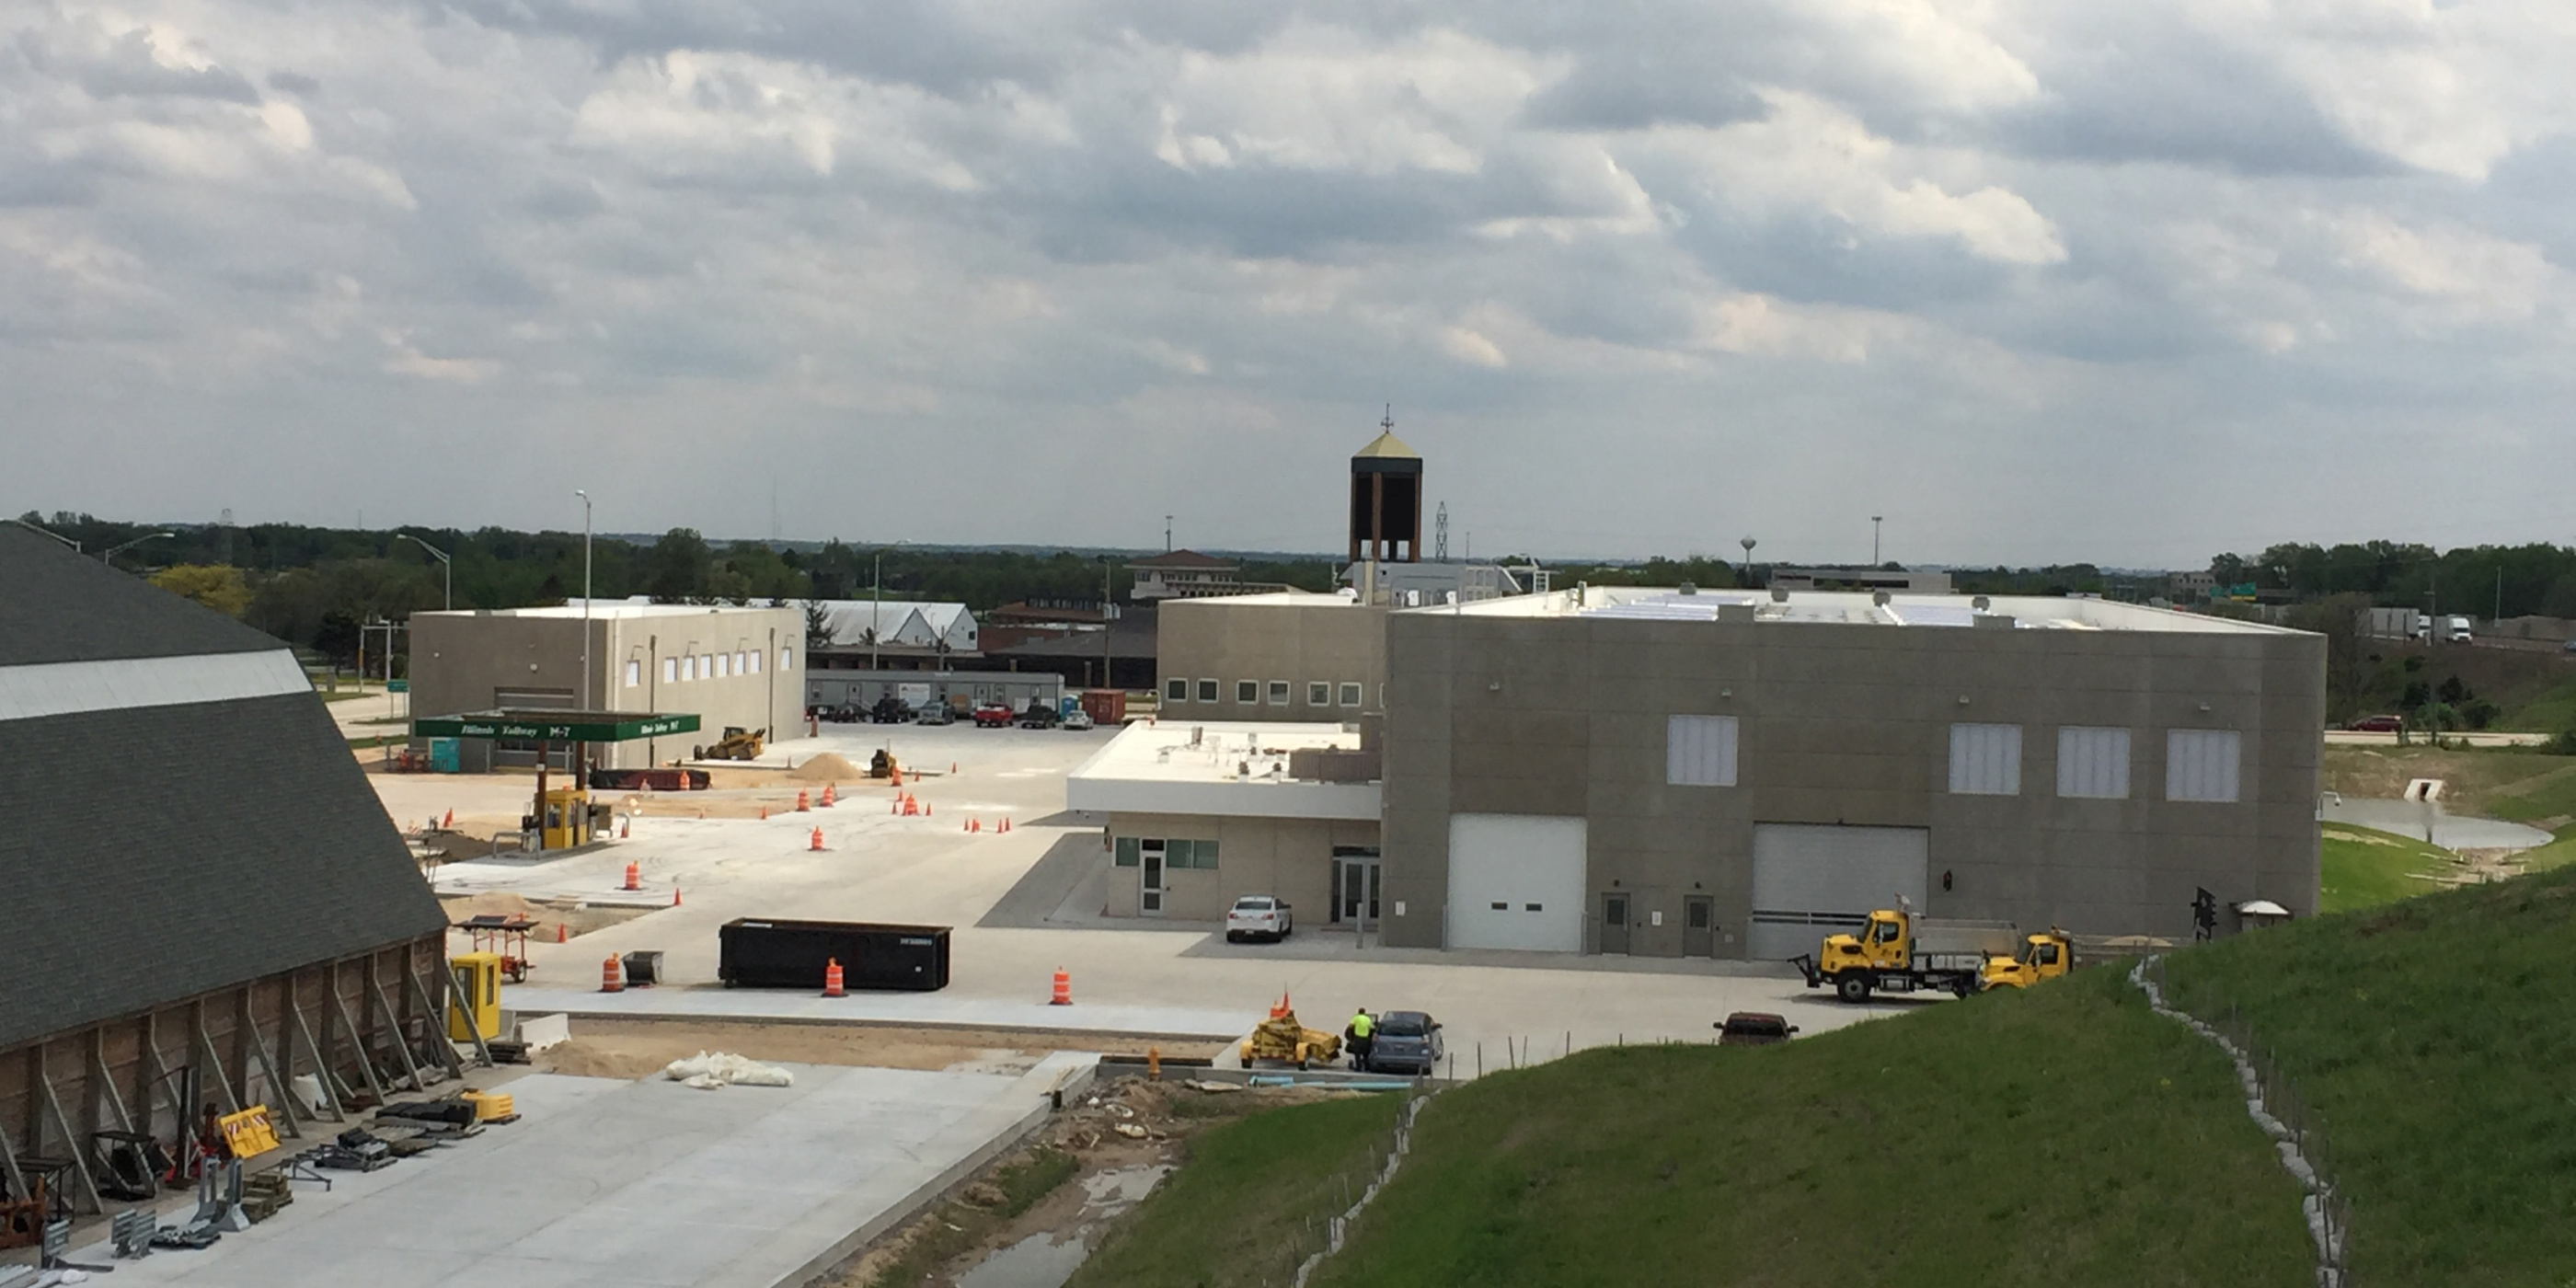 Illinois State Toll Highway Authority M-7 Facility - Rockford